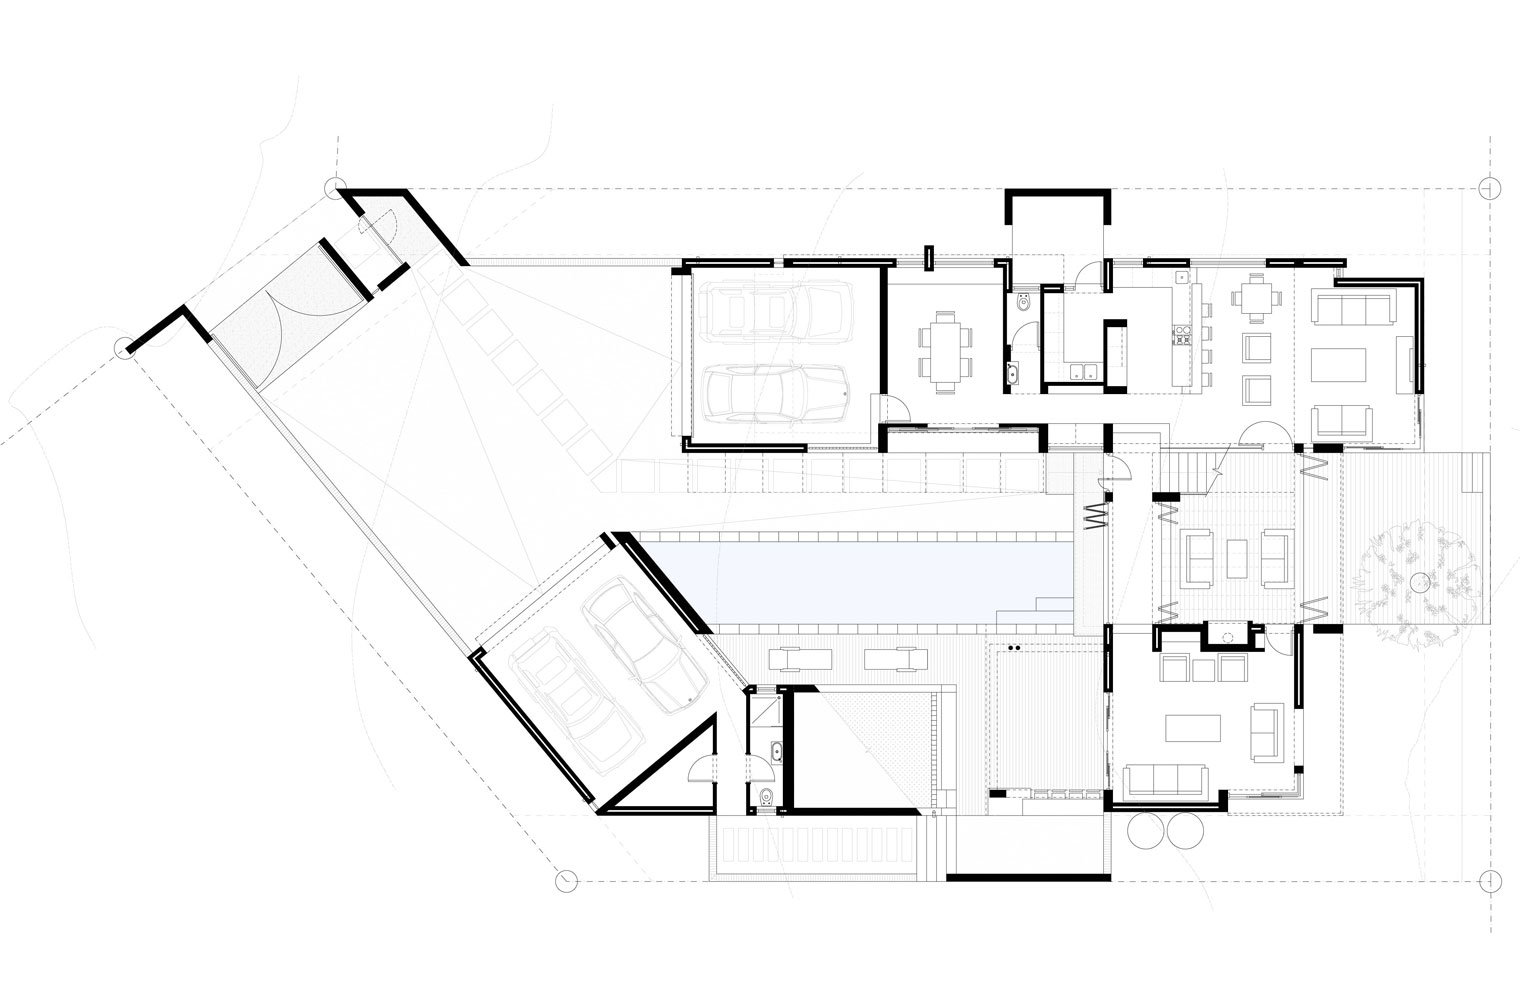 House Sibanda - Ground Floor Plan